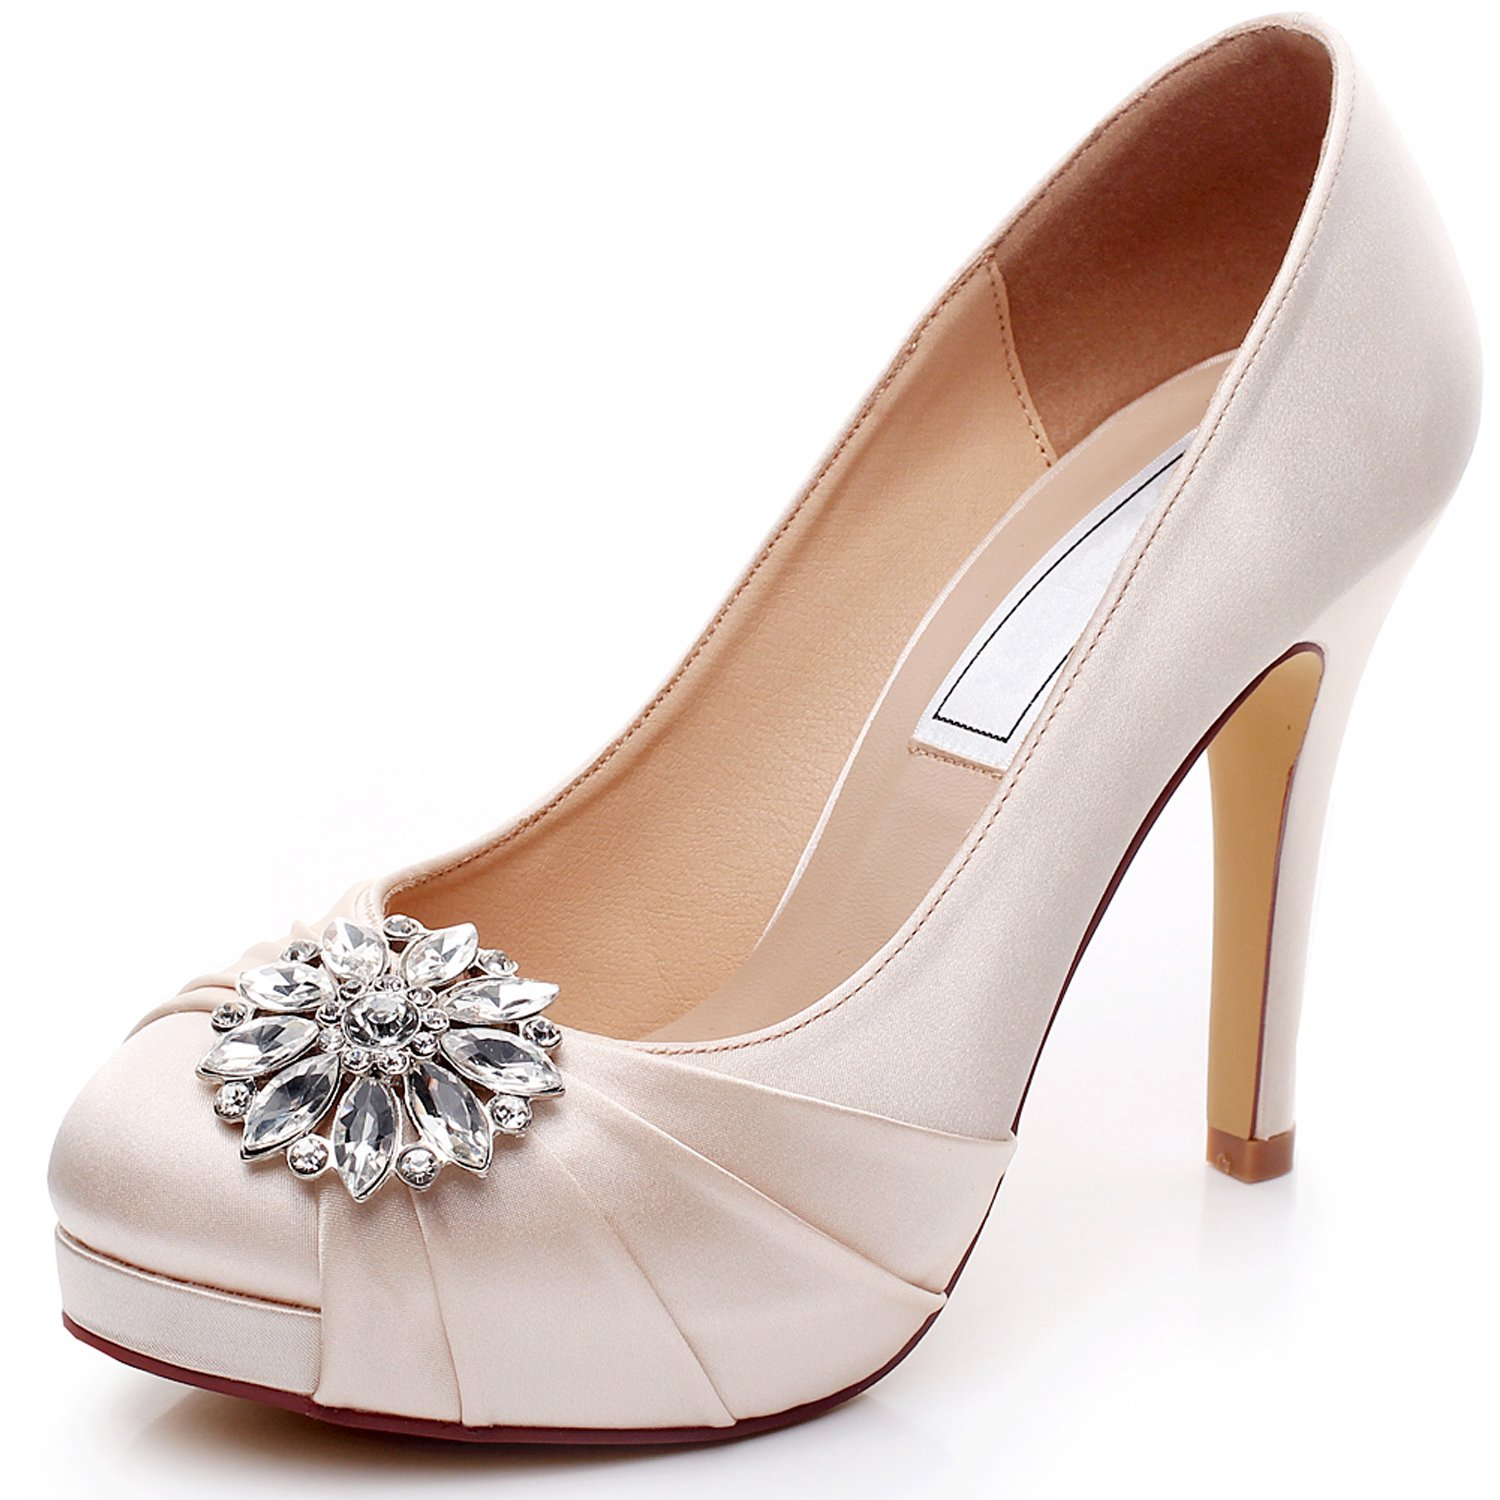 2f1c5662ca8 YOOZIRI Satin Wedding Shoes Combining Lace and Rhinestone Brooch High Heel Bridal  Shoes for Women 4.5inch-Peep Toe-EUR42  Amazon.co.uk  Shoes   Bags